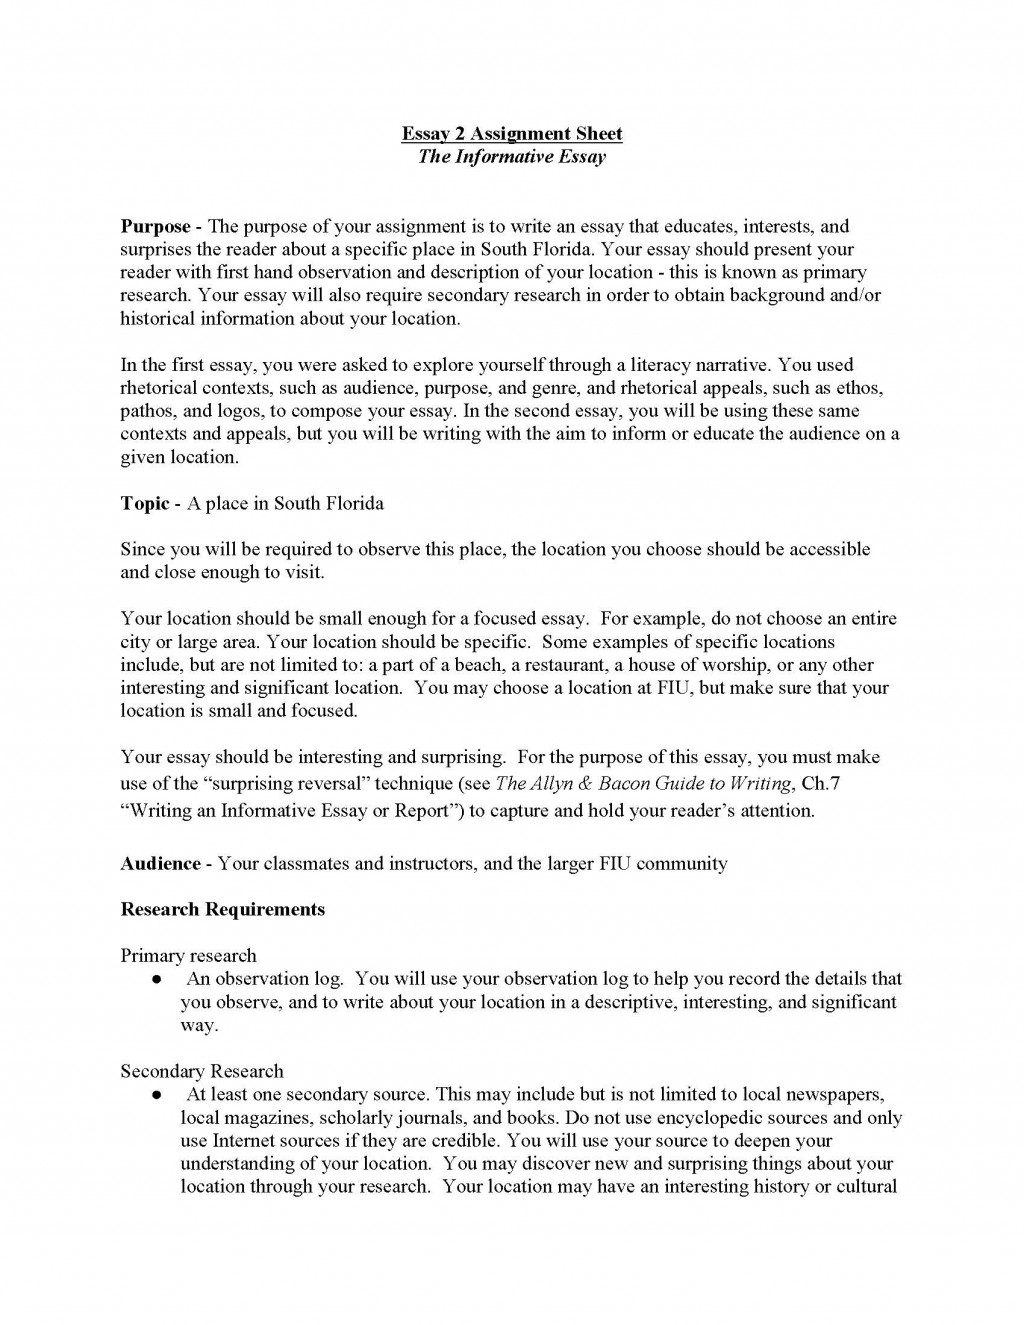 002 Essay Example Informative Topics Unit Assignment Page 1 Remarkable For 4th Grade Expository High School 6th Graders Large